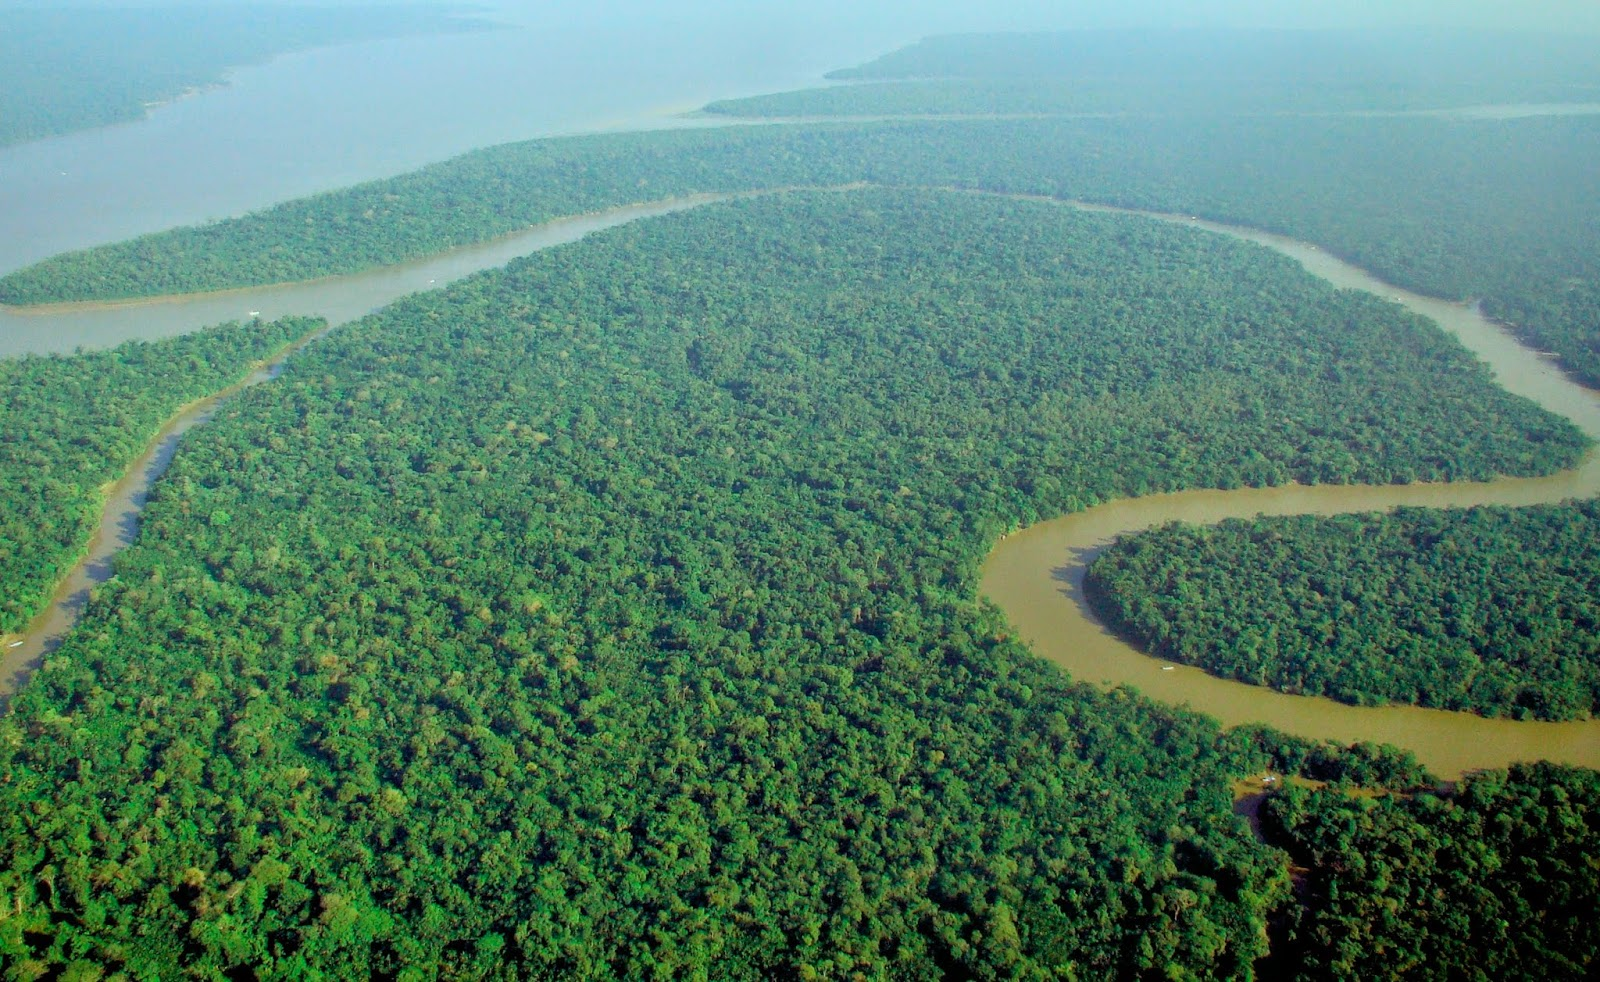 the Amazon, though not the one we're talking about in the article